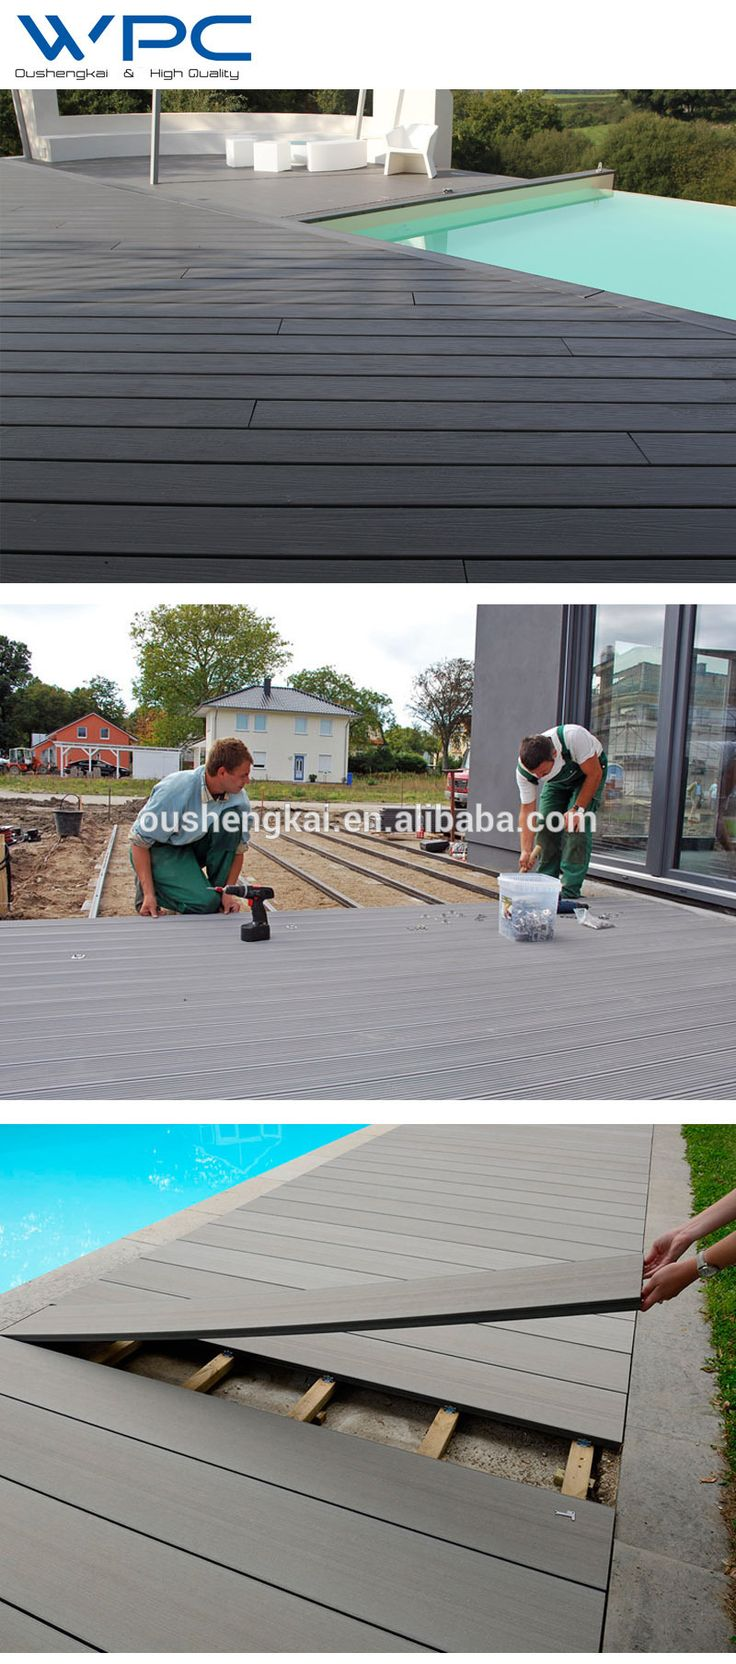 Cheap Price WPC Waterproof Outdoor Deck Flooring, View Deck Flooring, OUSHENGKAI / OEM Product Details from Haining Oushengkai Trade Co., Ltd. on Alibaba.com